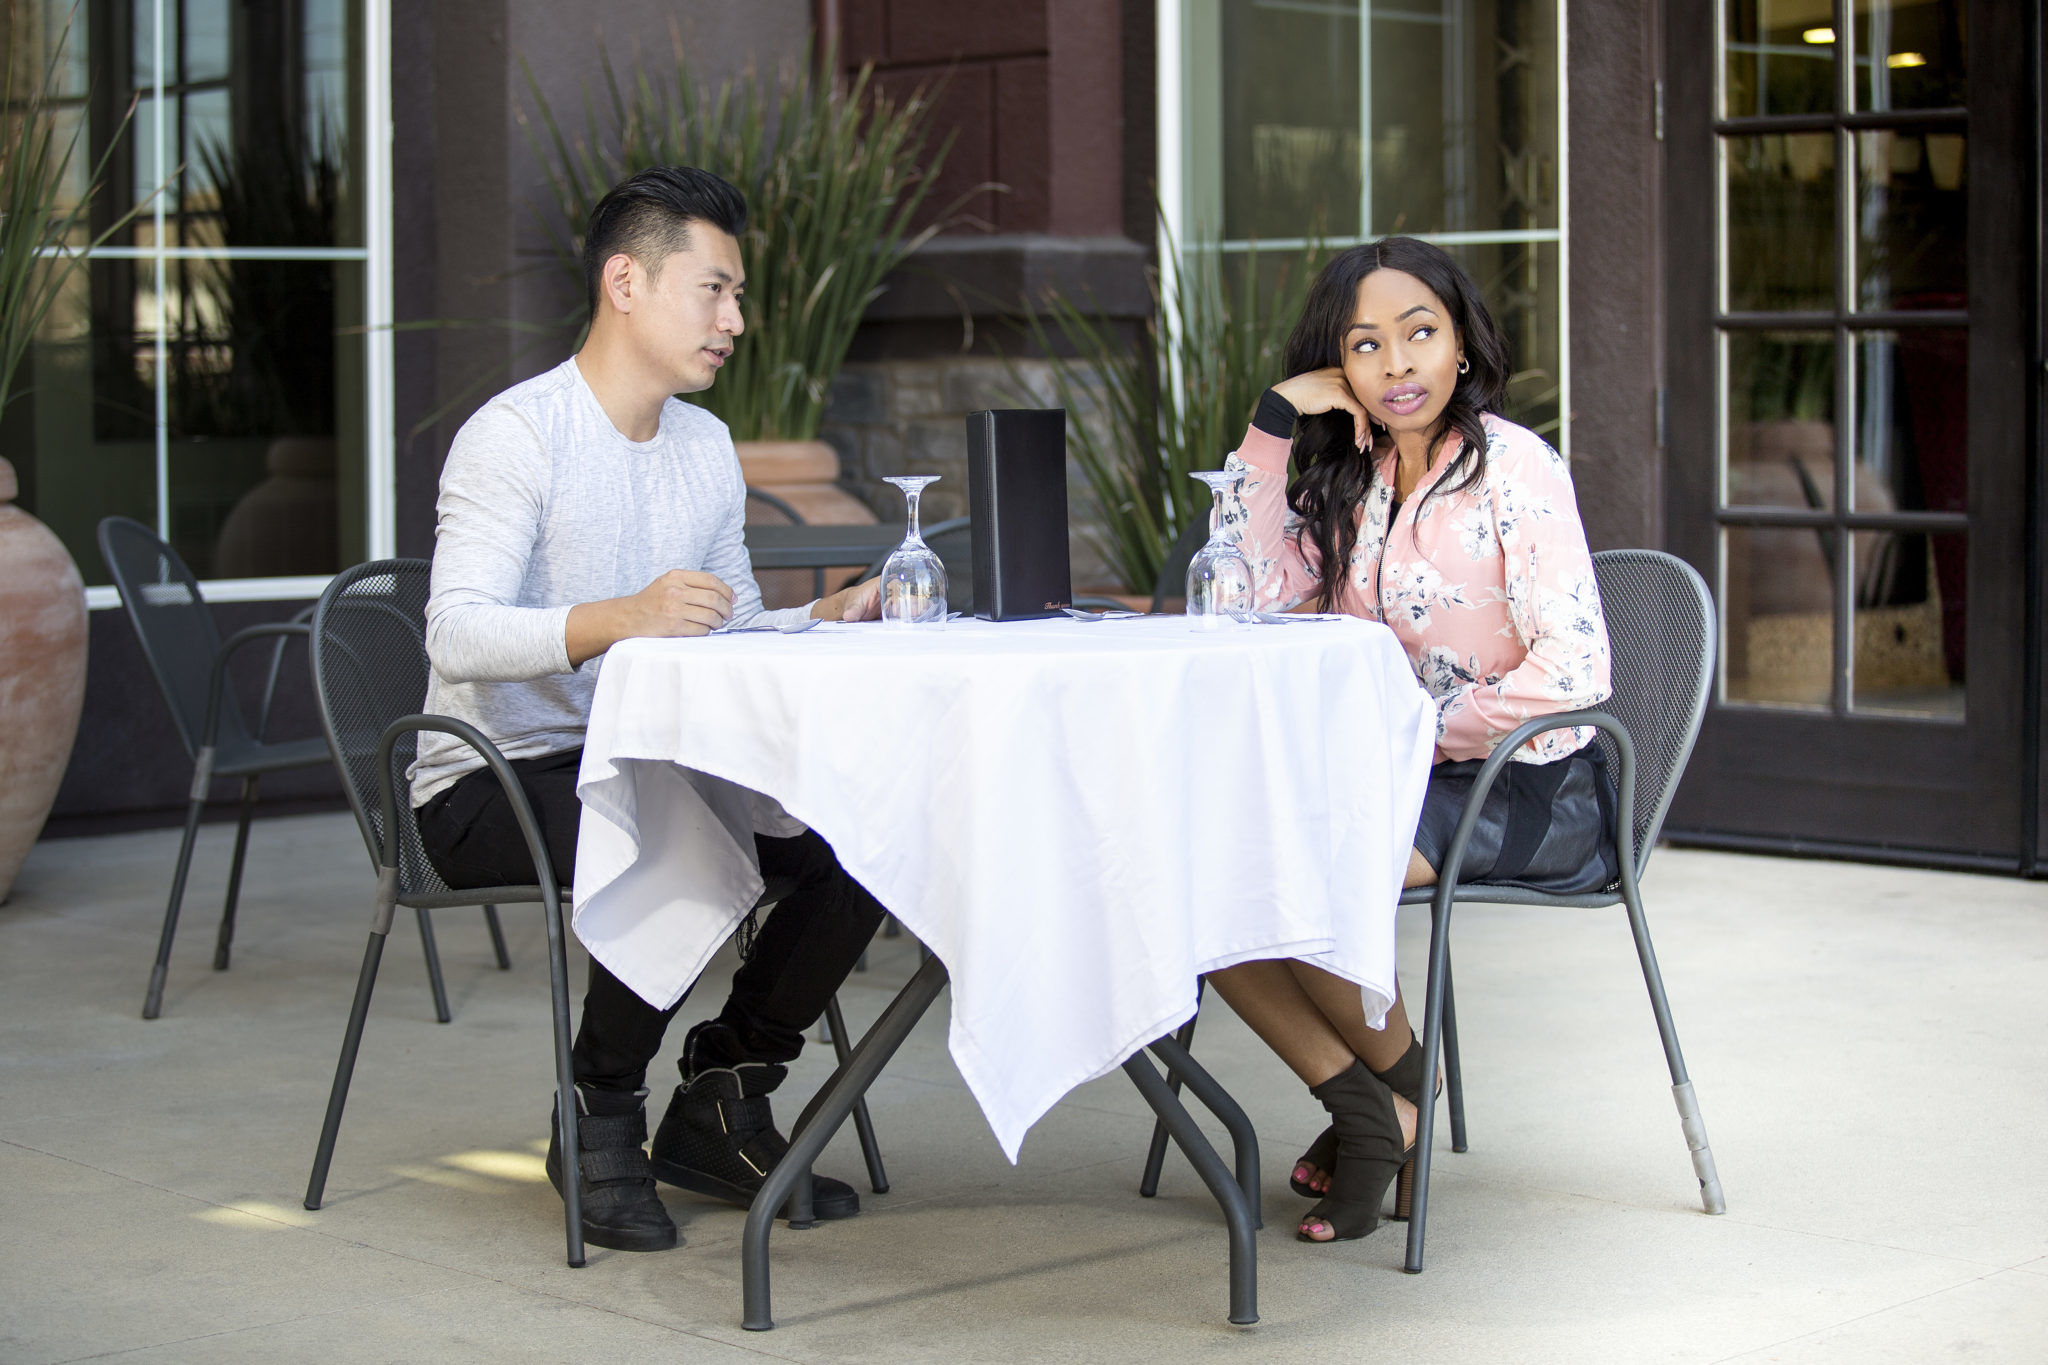 Couple Fighting in an Outdoor Cafe Date